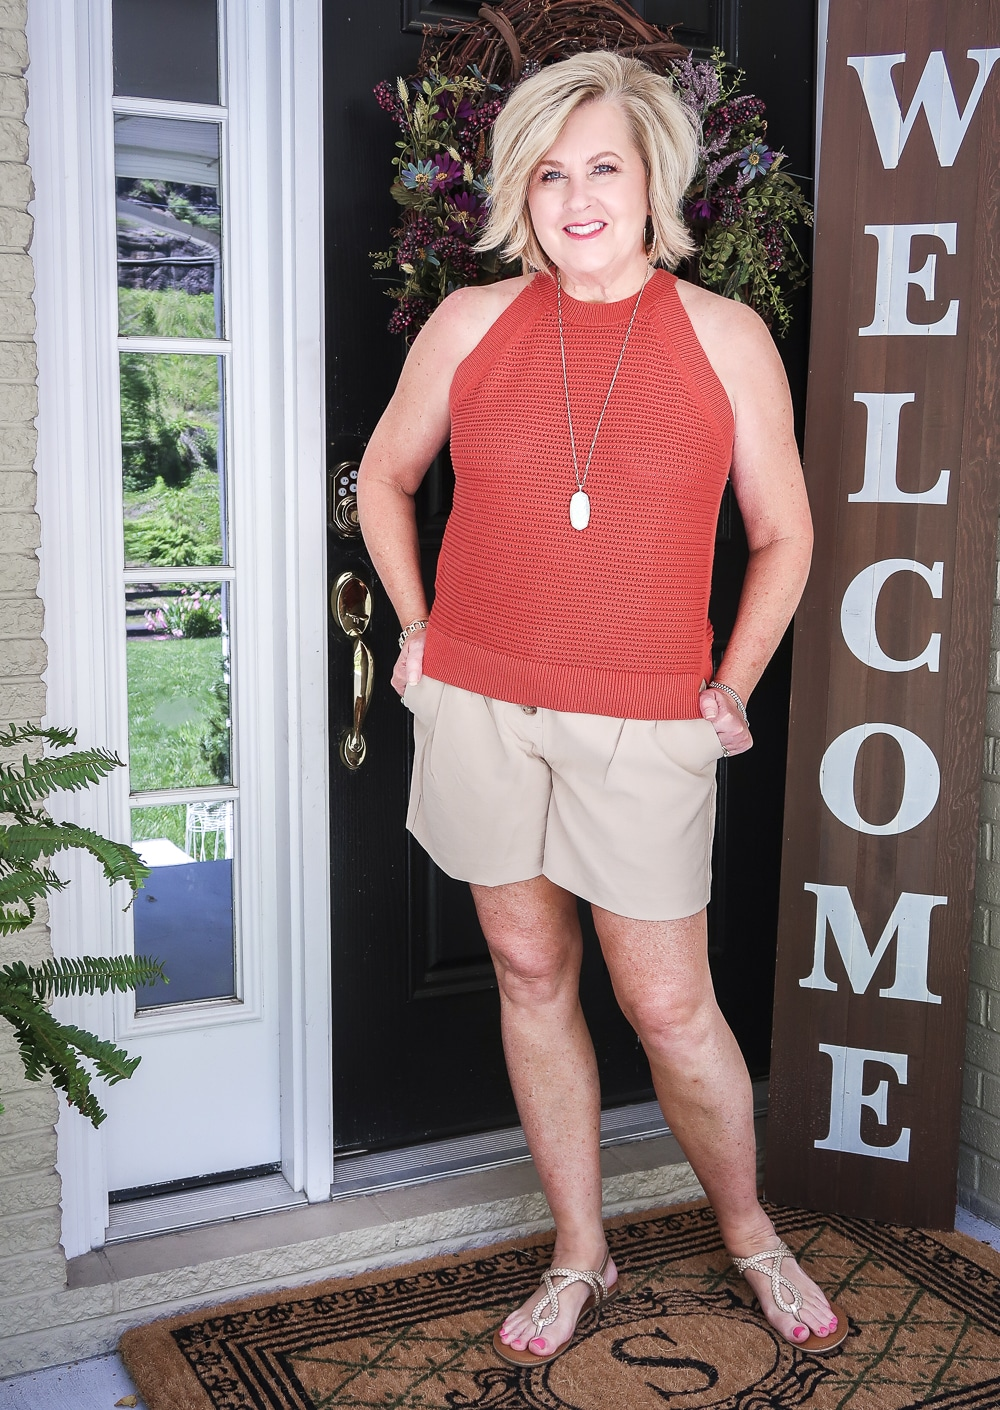 Fashion Blogger 50 Is Not Old is wearing a red clay crochet halter top, gold jewelry, beige shorts, and gold sandals